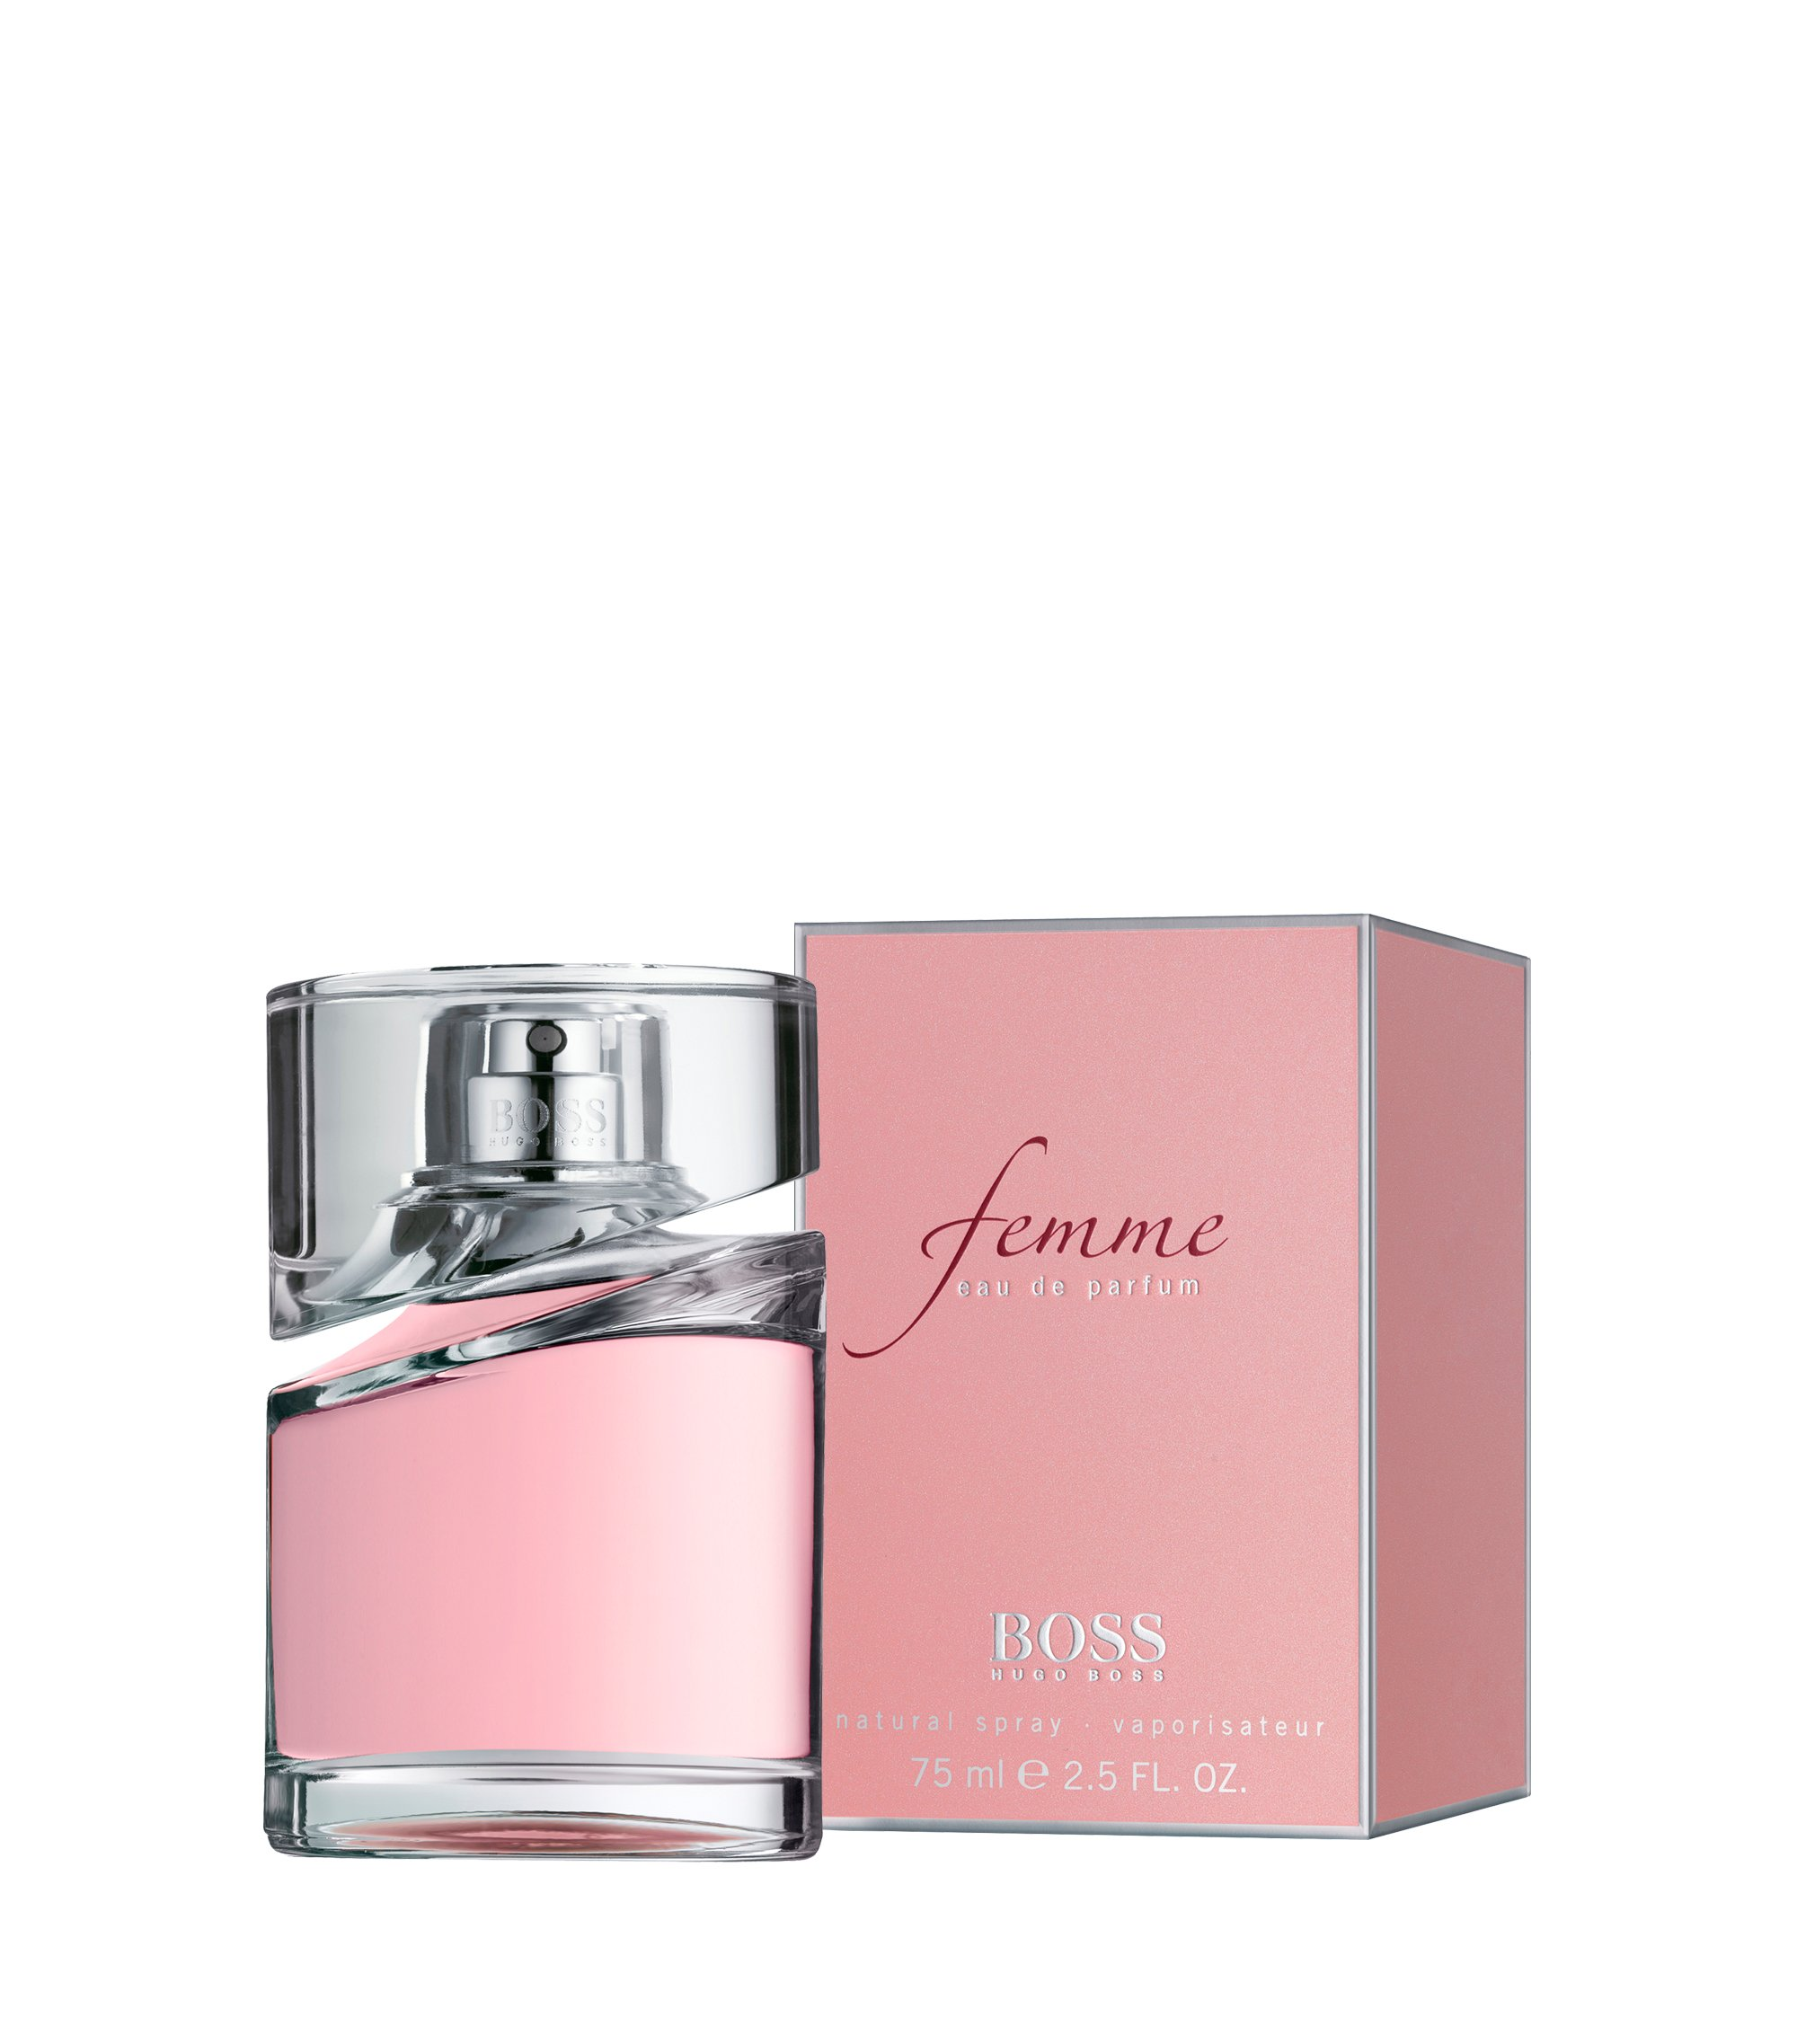 Femme by BOSS Eau de Parfum 75 ml , Assorted-Pre-Pack